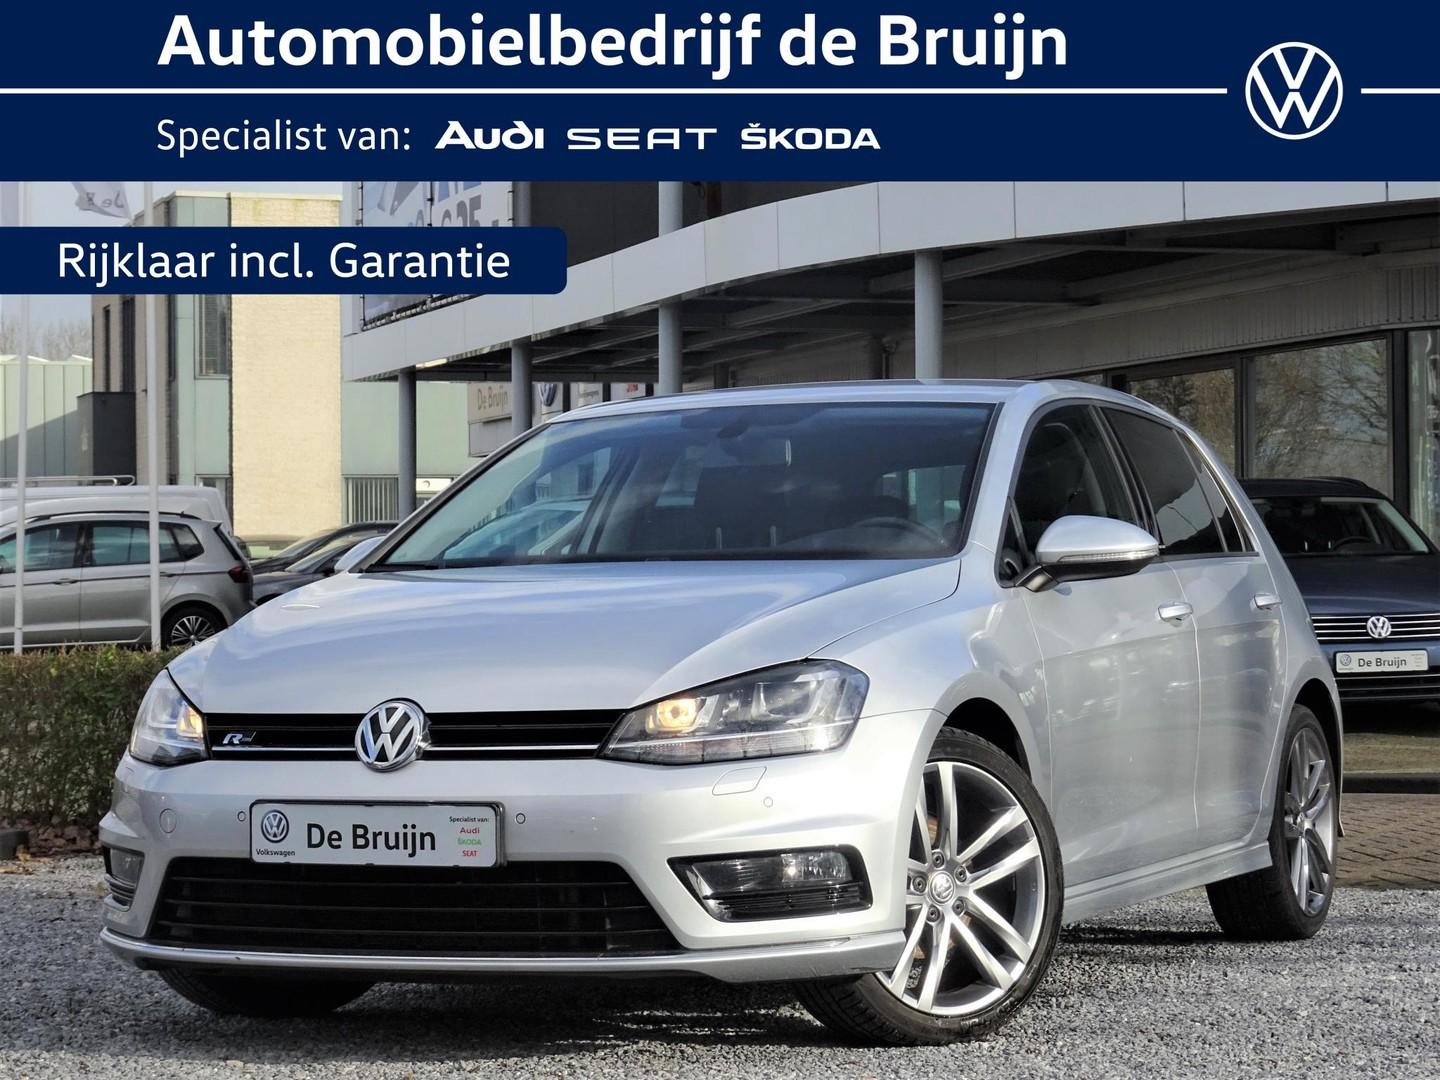 Volkswagen Golf Tsi 110 pk r-line (led,clima,lm,pdc)